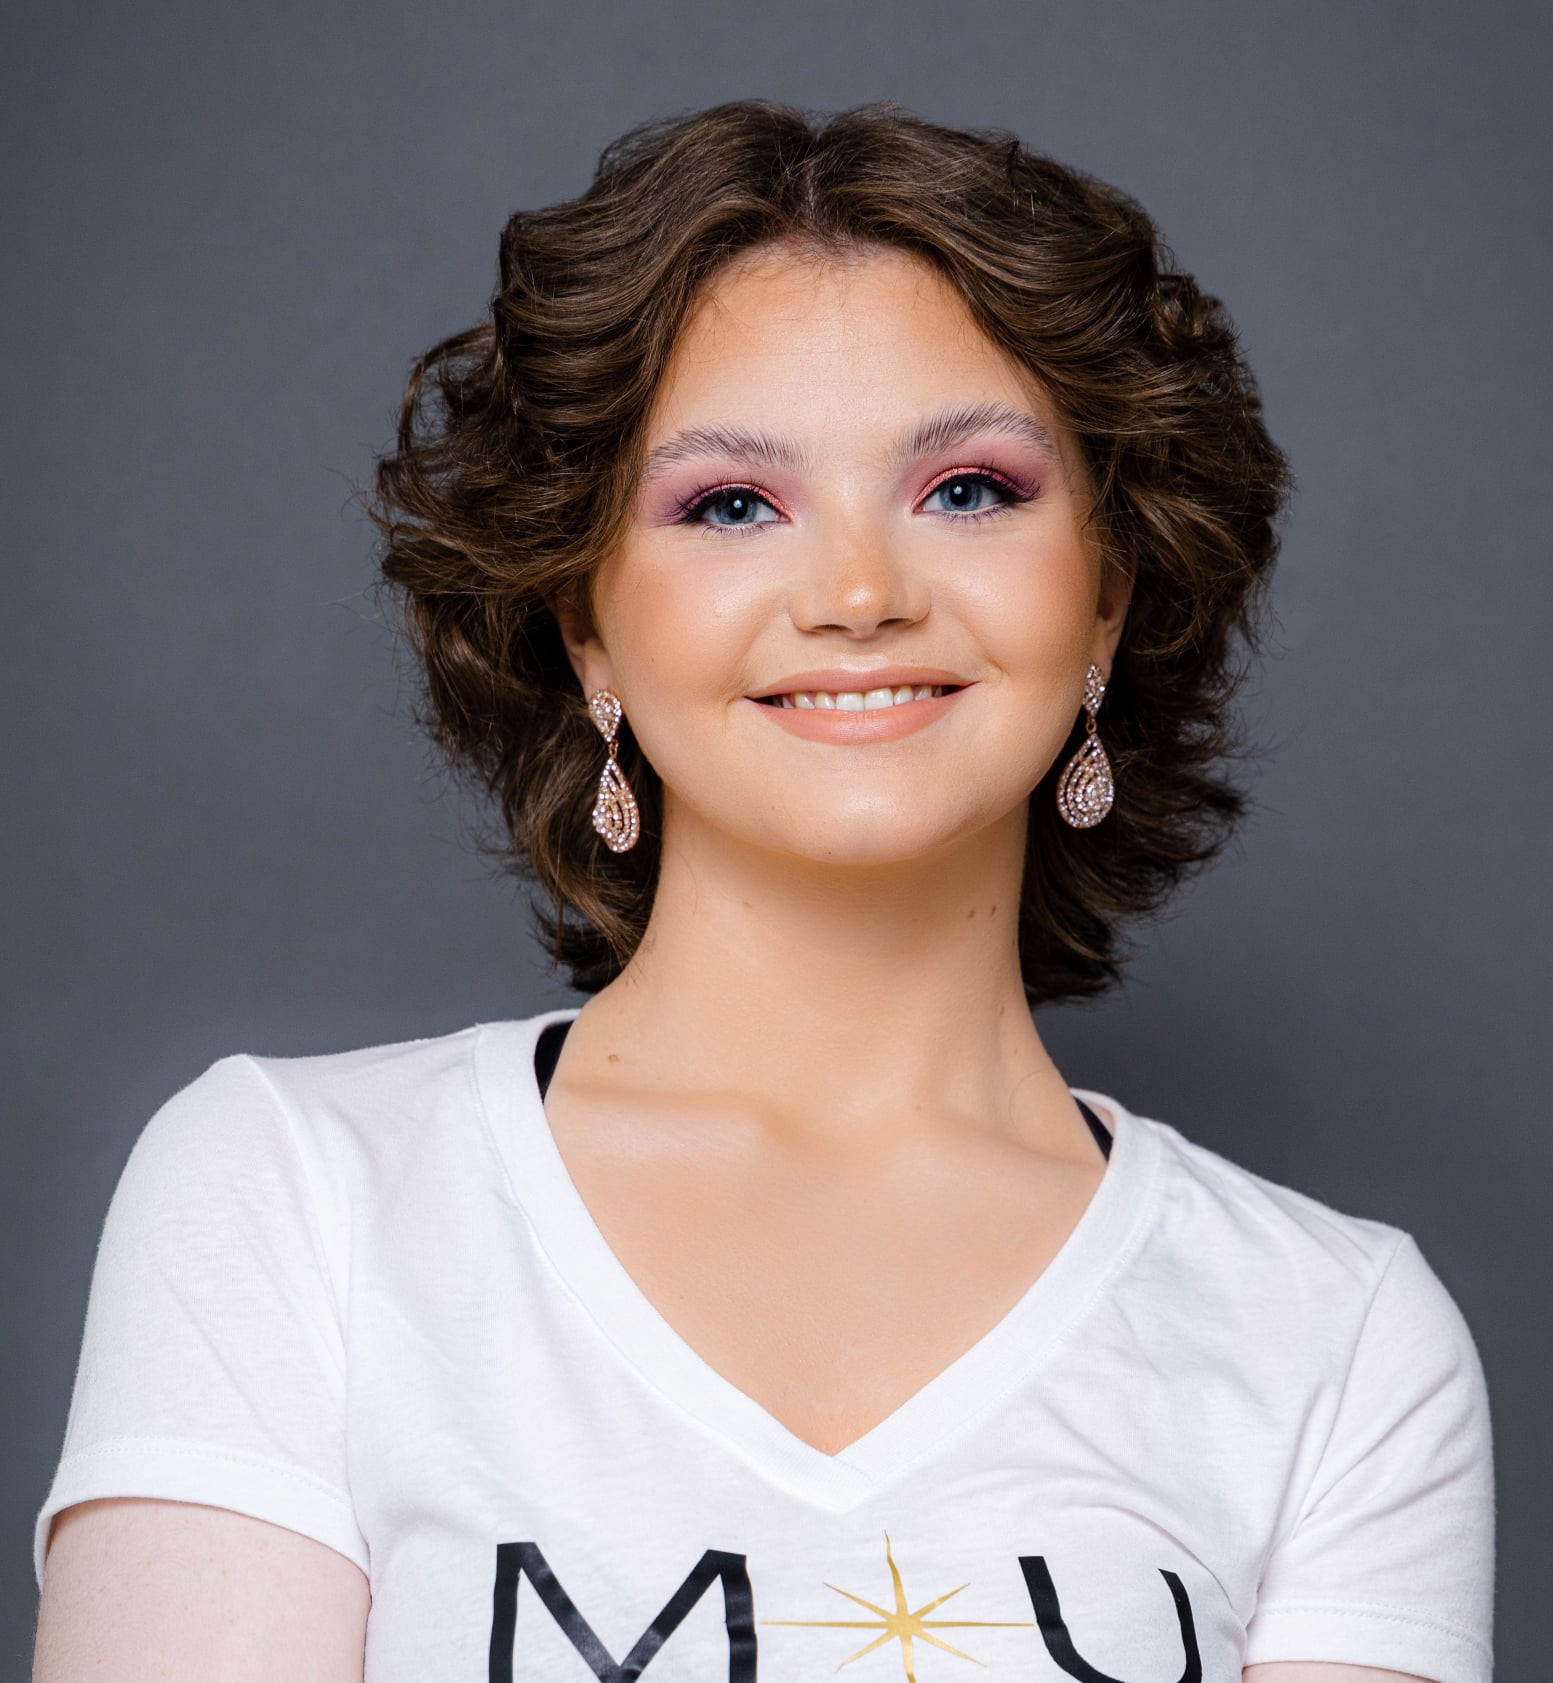 candidatas a miss universe iceland 2021. final: 29 sep. - Página 2 RLY31s